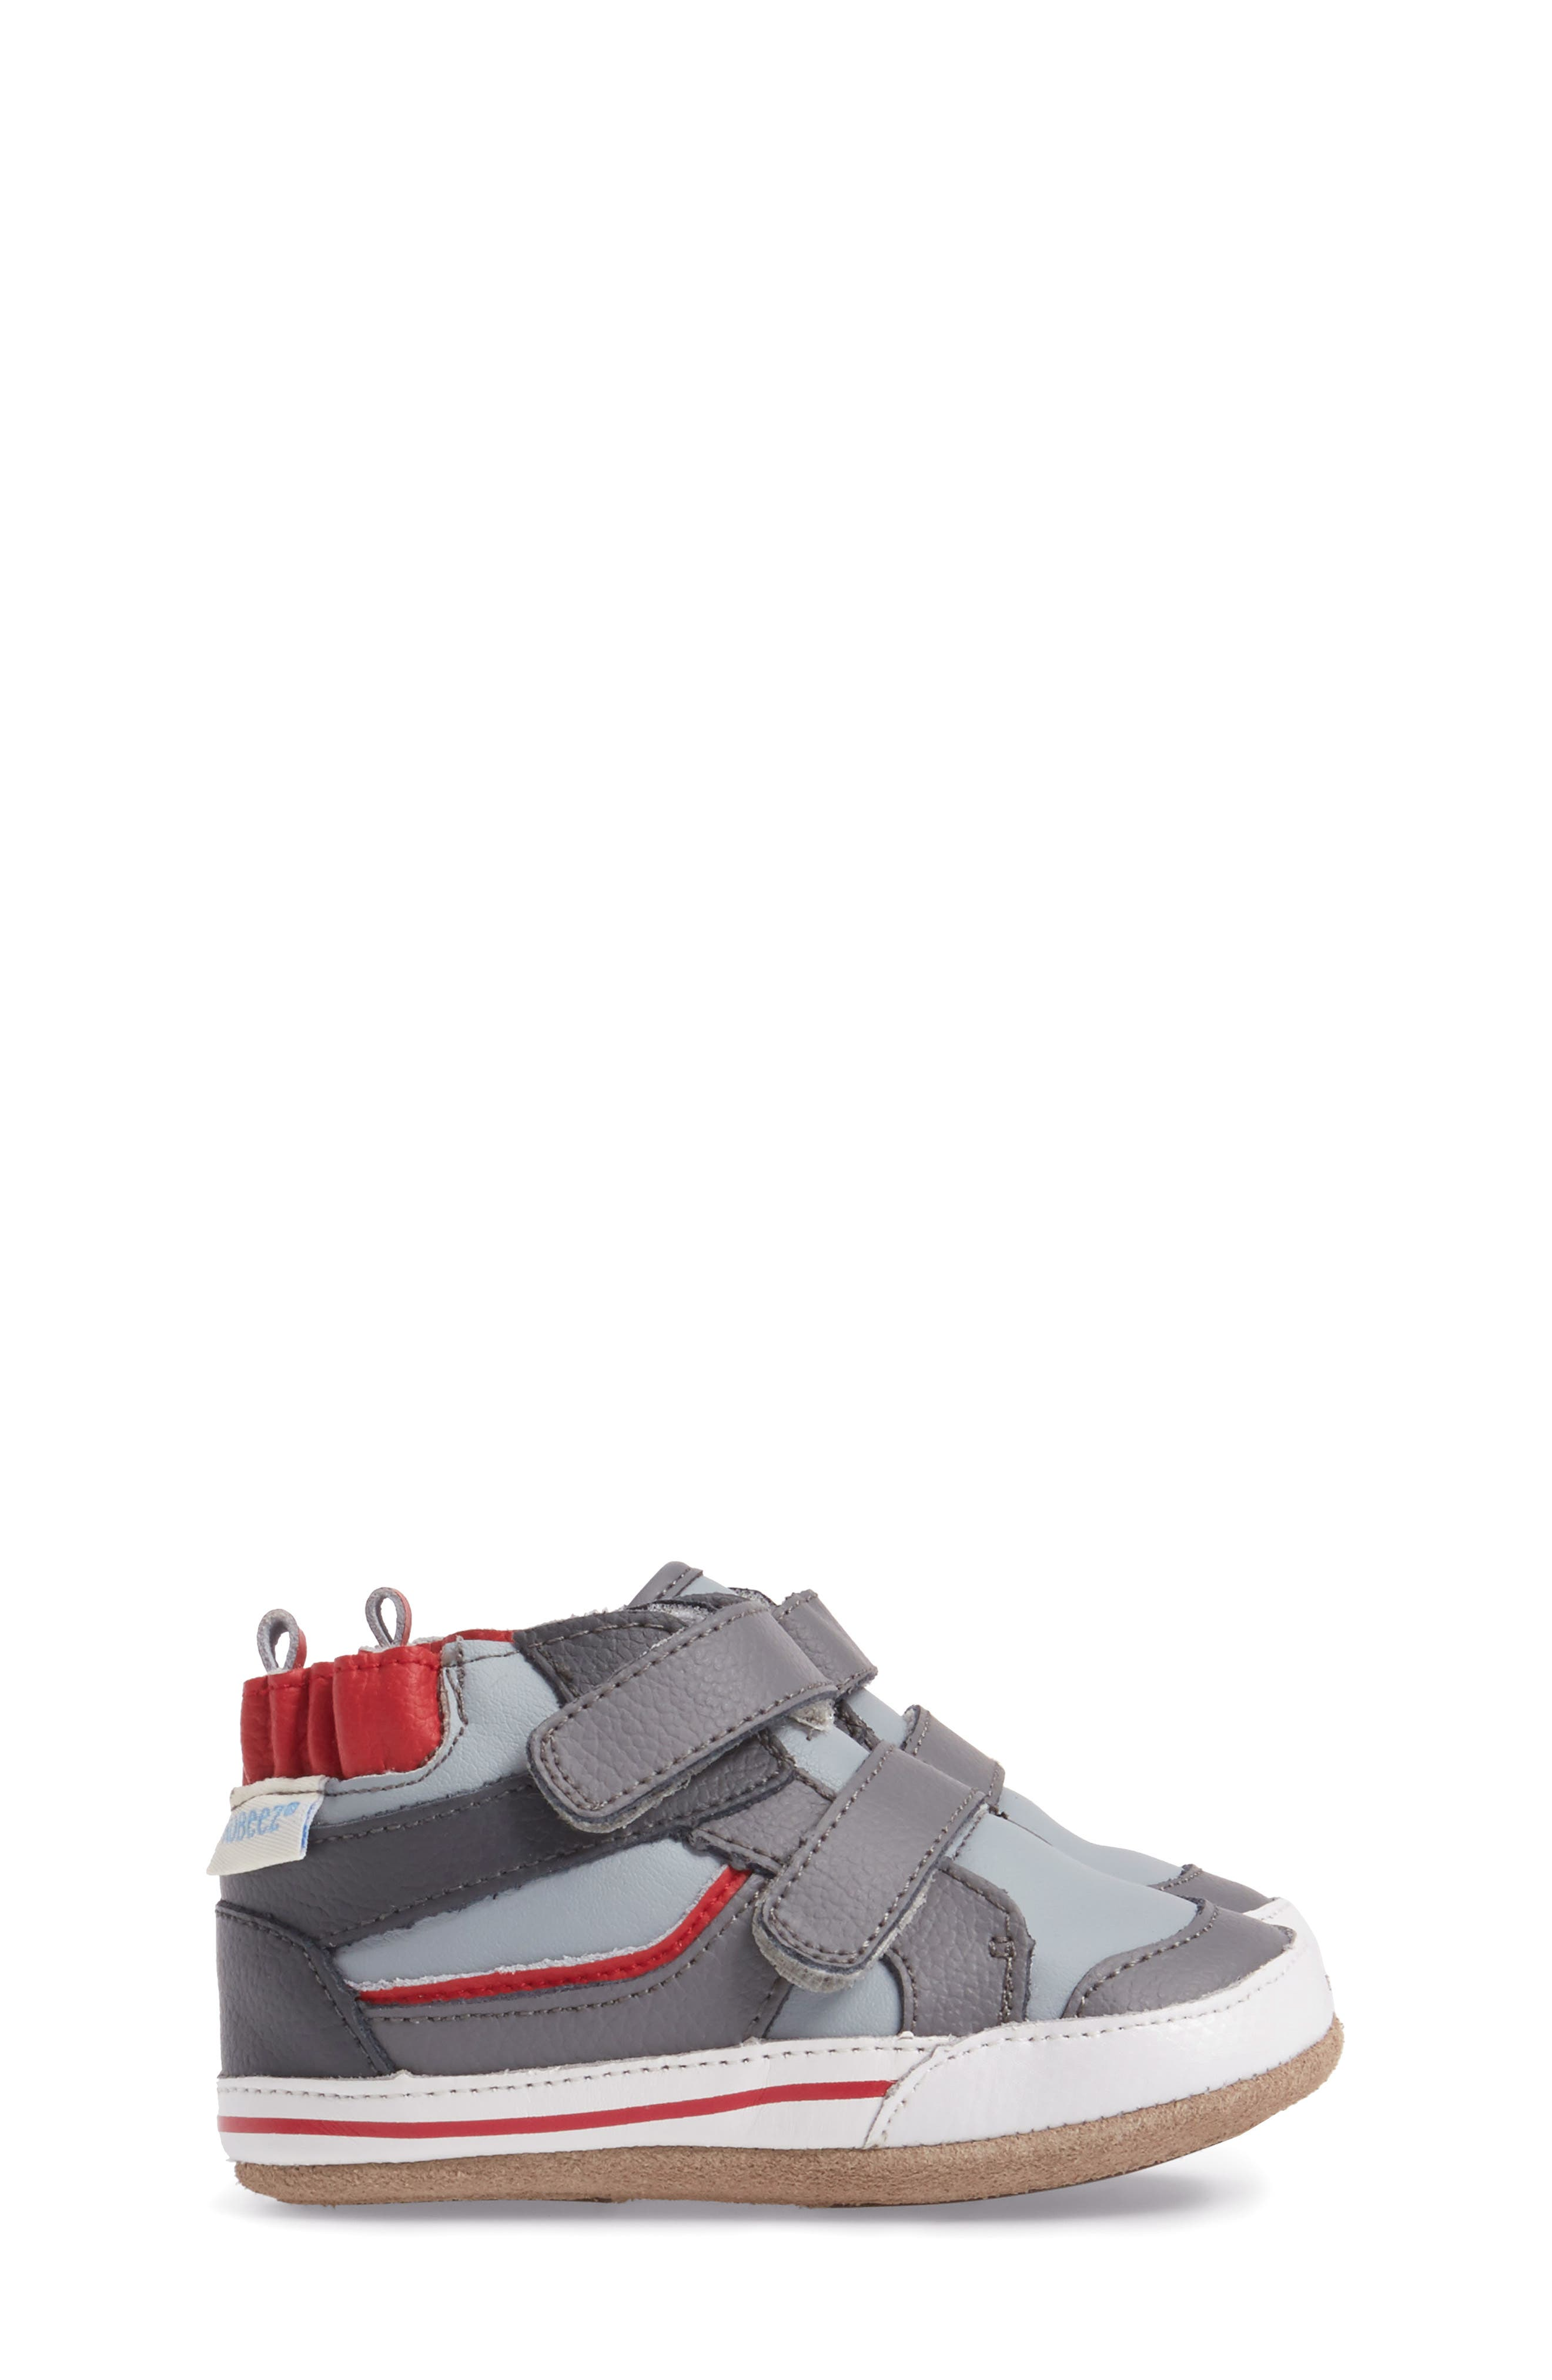 Greg Crib Shoe,                             Alternate thumbnail 3, color,                             Grey